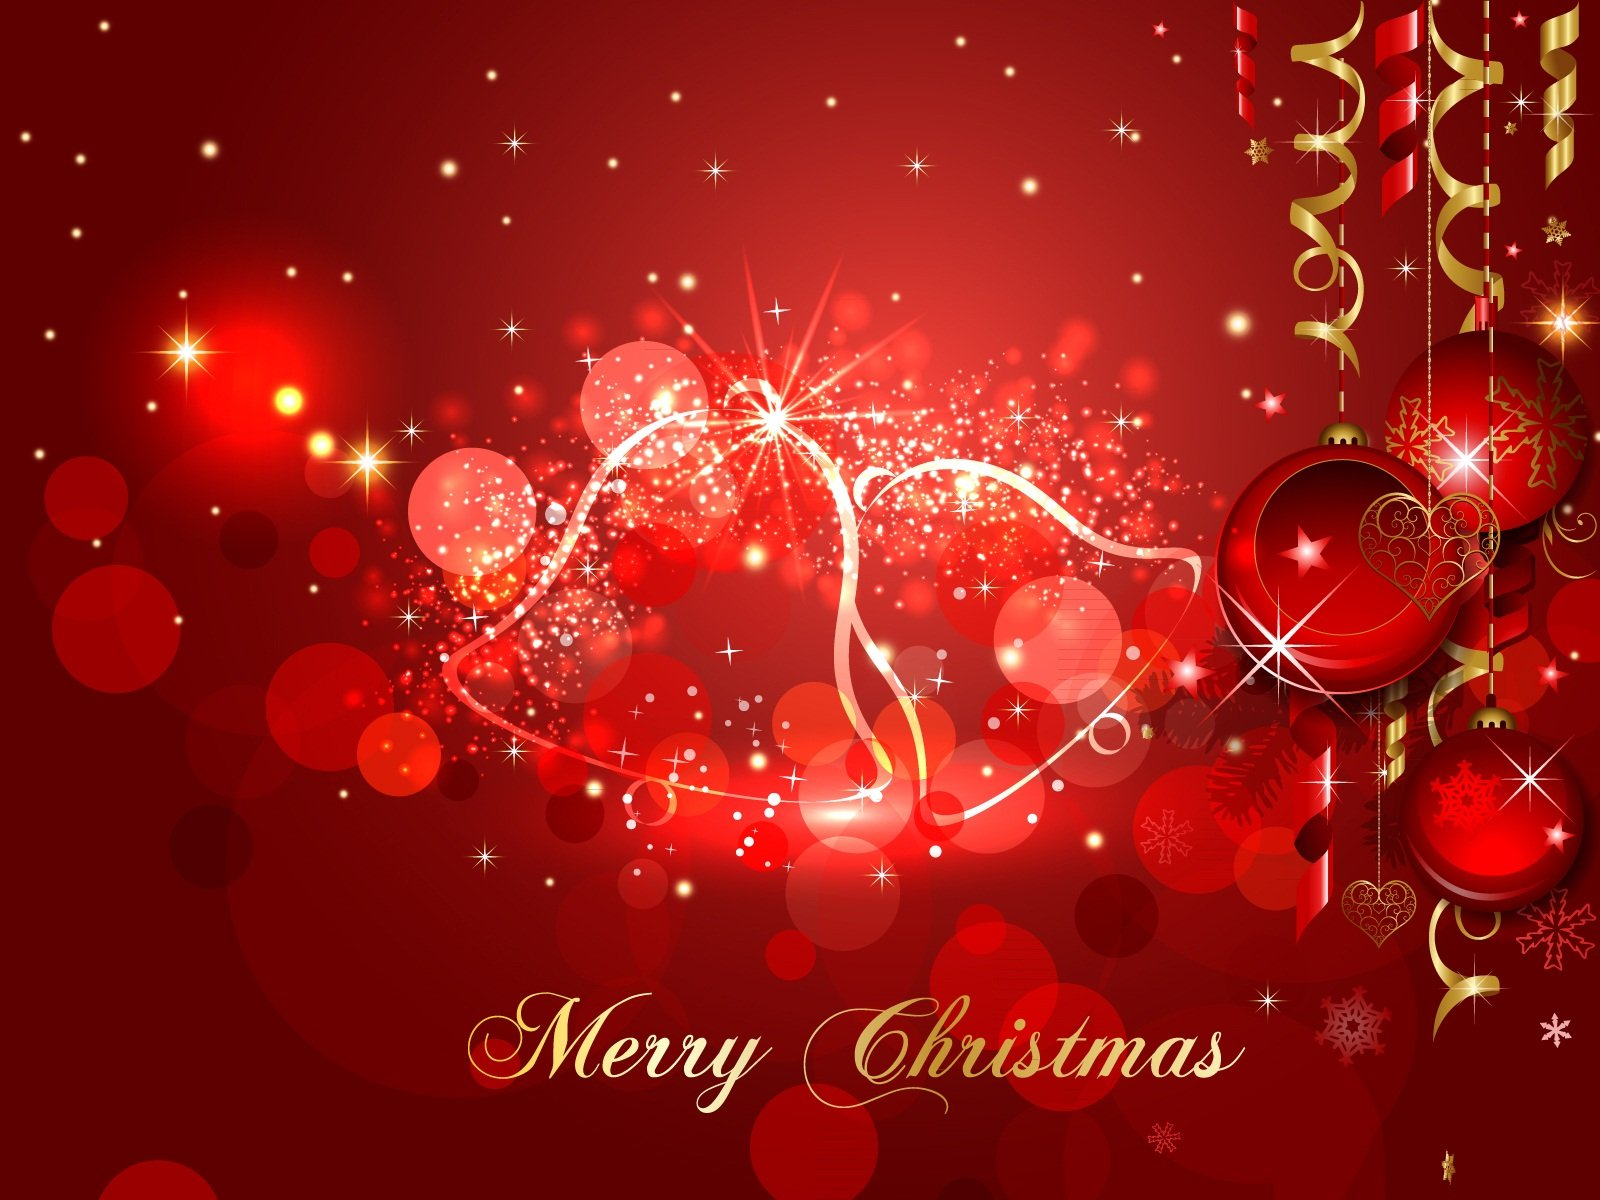 Christmas Images for Girlfriend